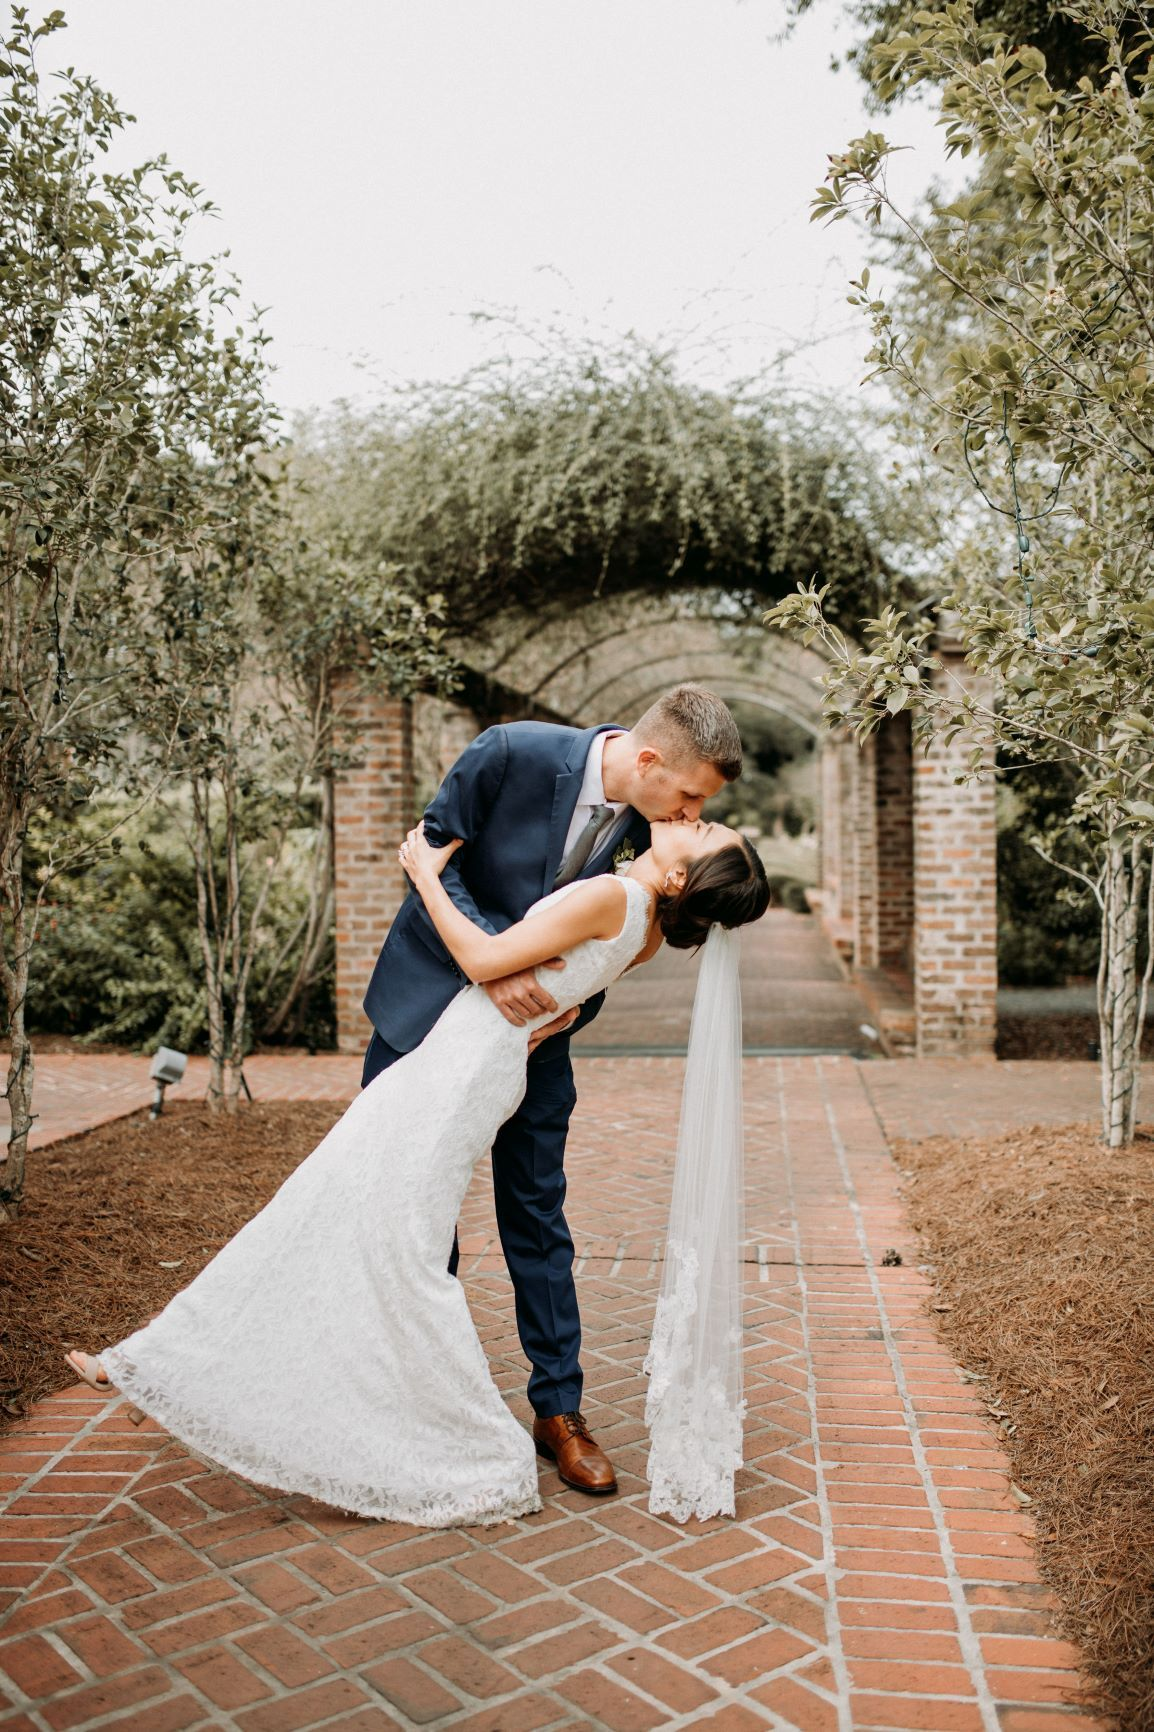 New Orleans Elopement Packages Elope In New Orleans The Easy Way New Orleans Elopement New Orleans Elopement